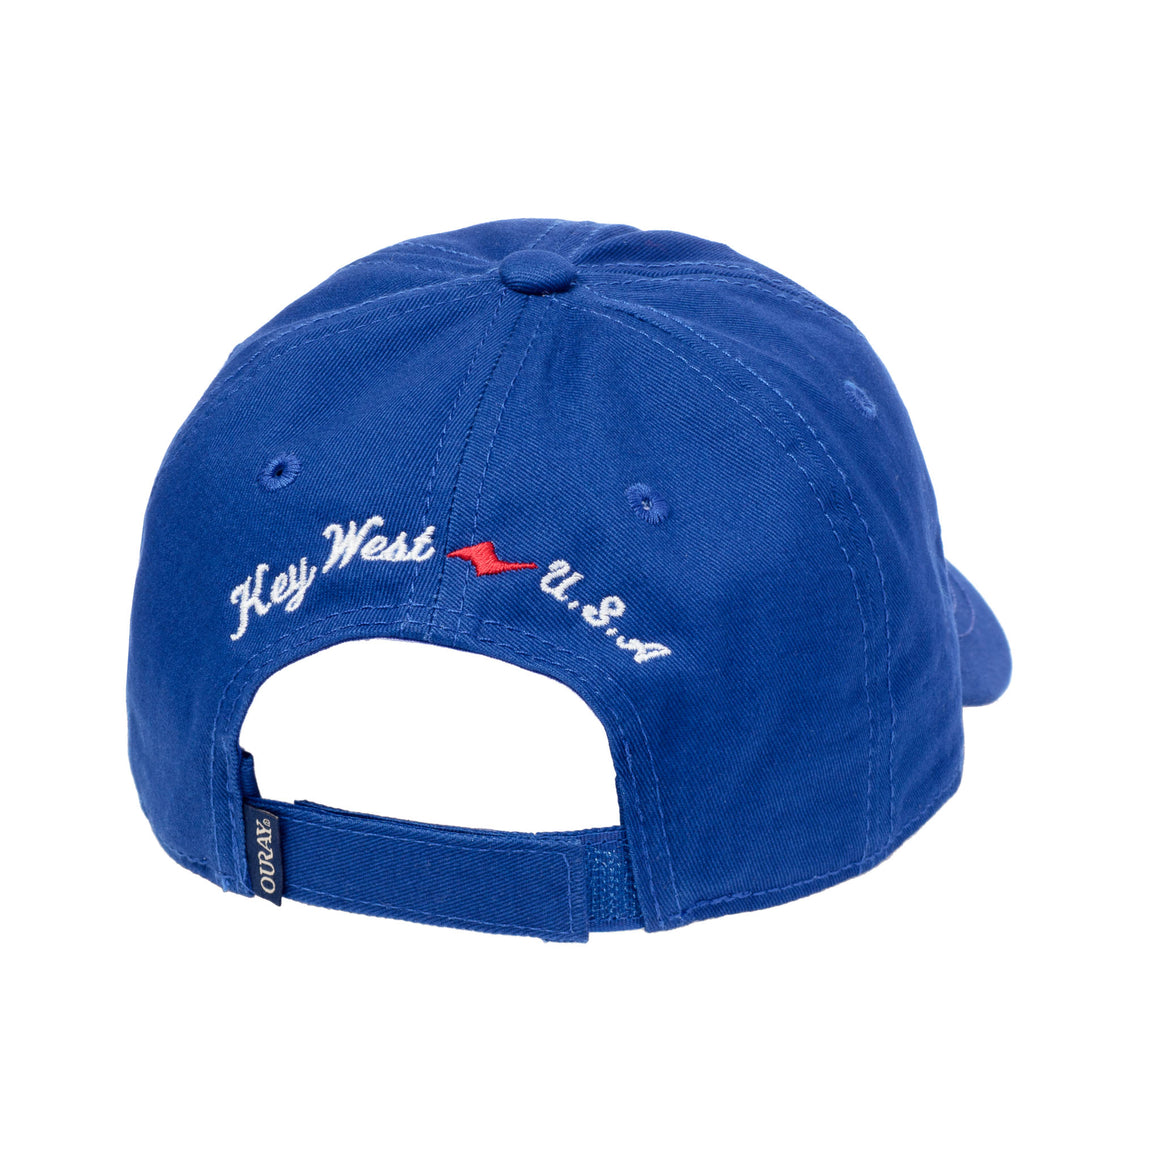 Kids Cotton Twill 'Dad' hat